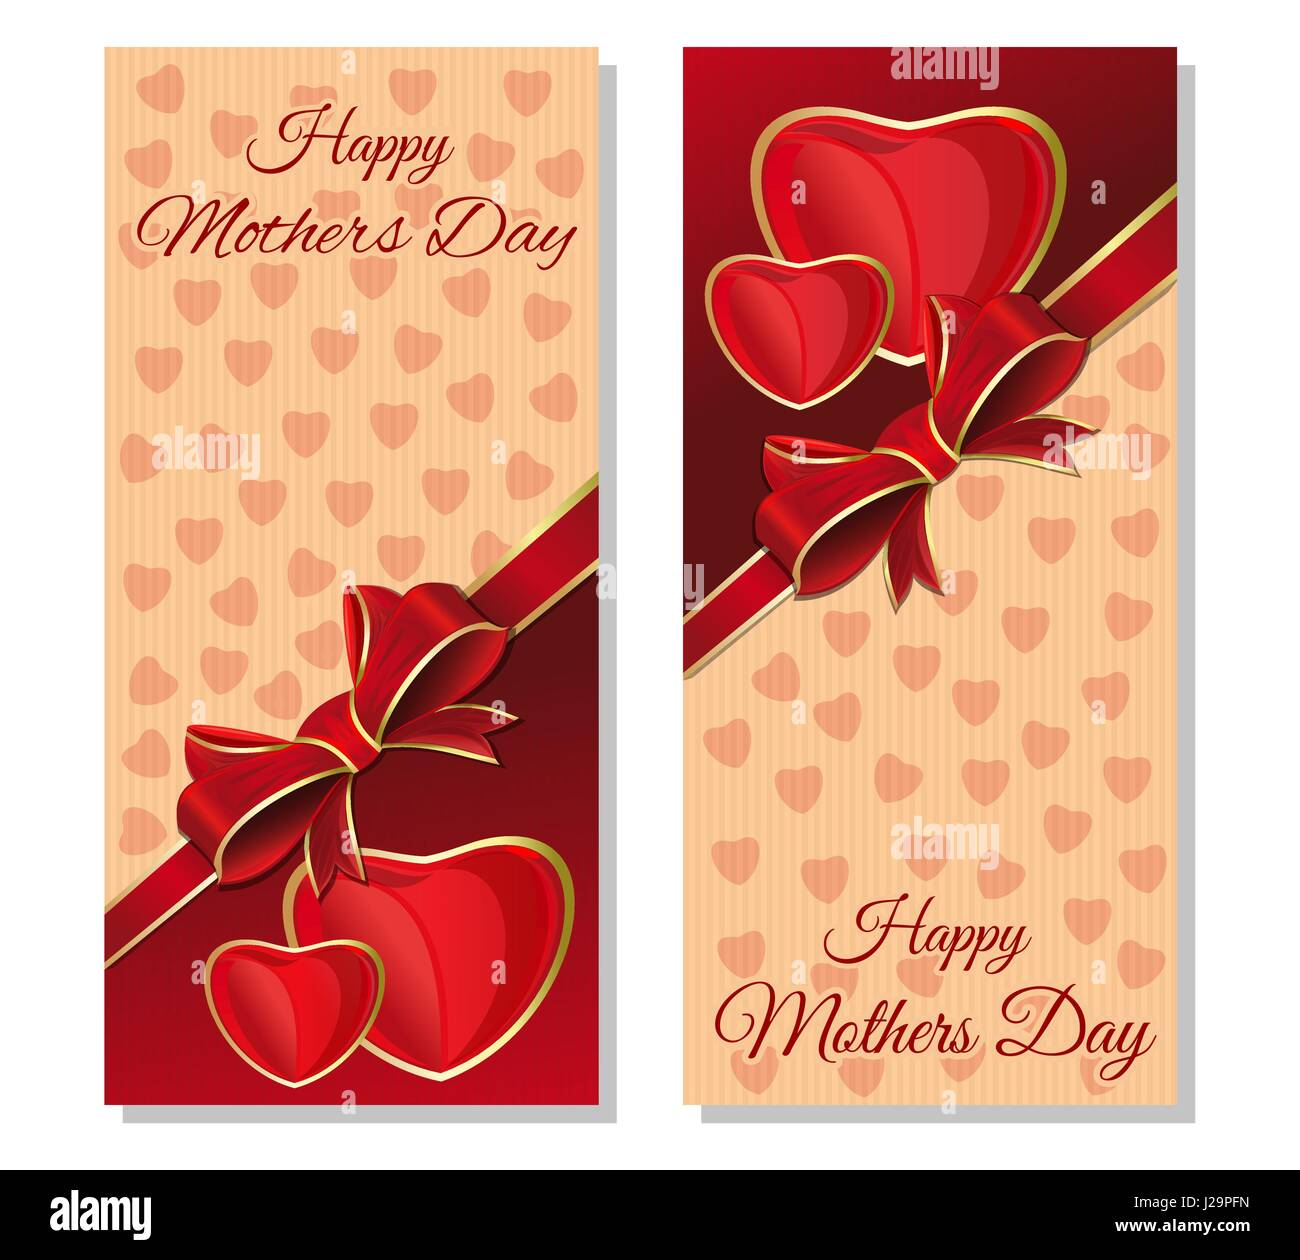 Happy mothers day greeting cards set festive red and beige stock greeting cards set festive red and beige background with design elements for mothers day vector flyer template kristyandbryce Gallery